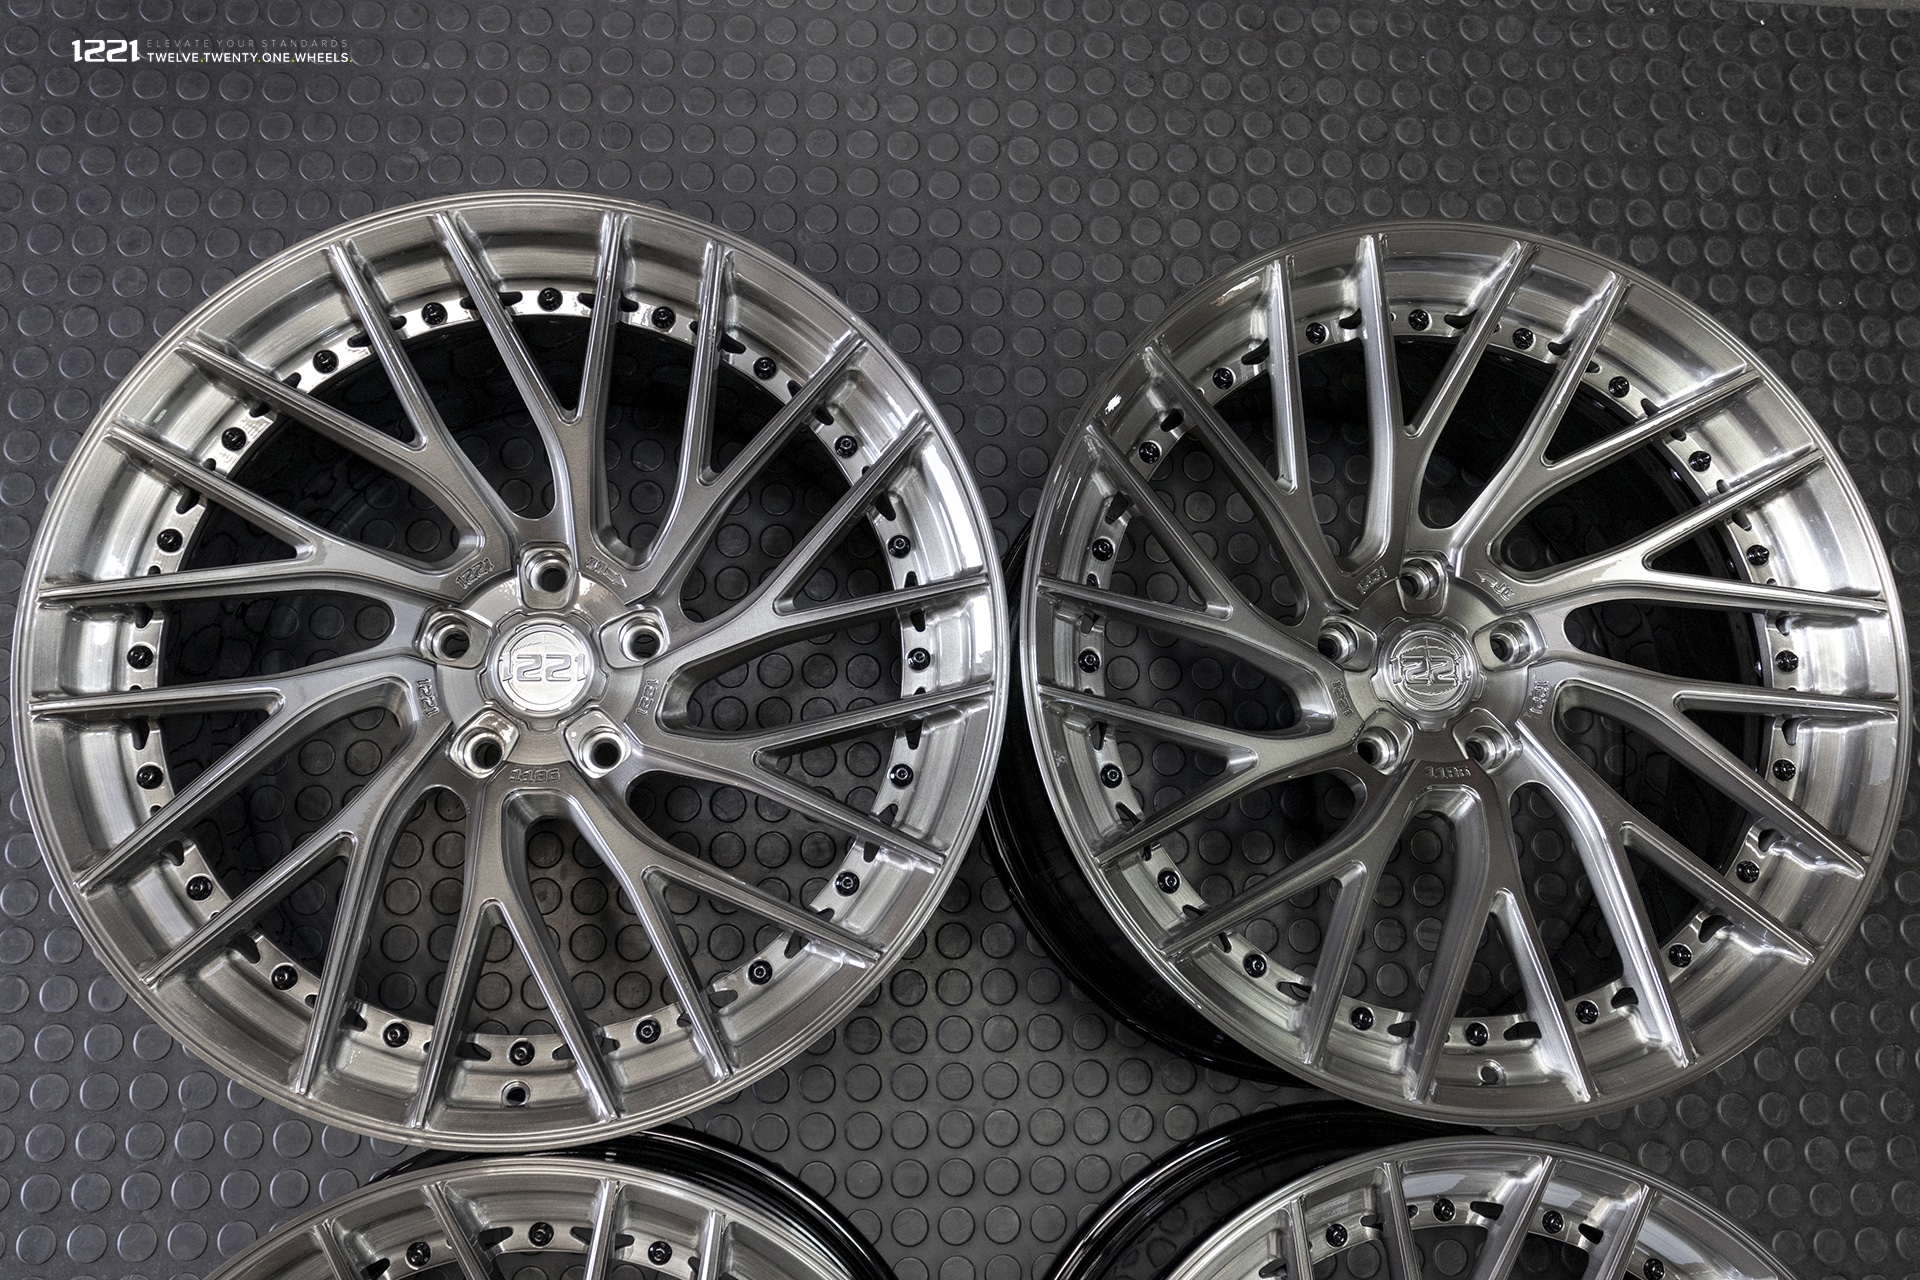 Rotational Concave Forged Wheels